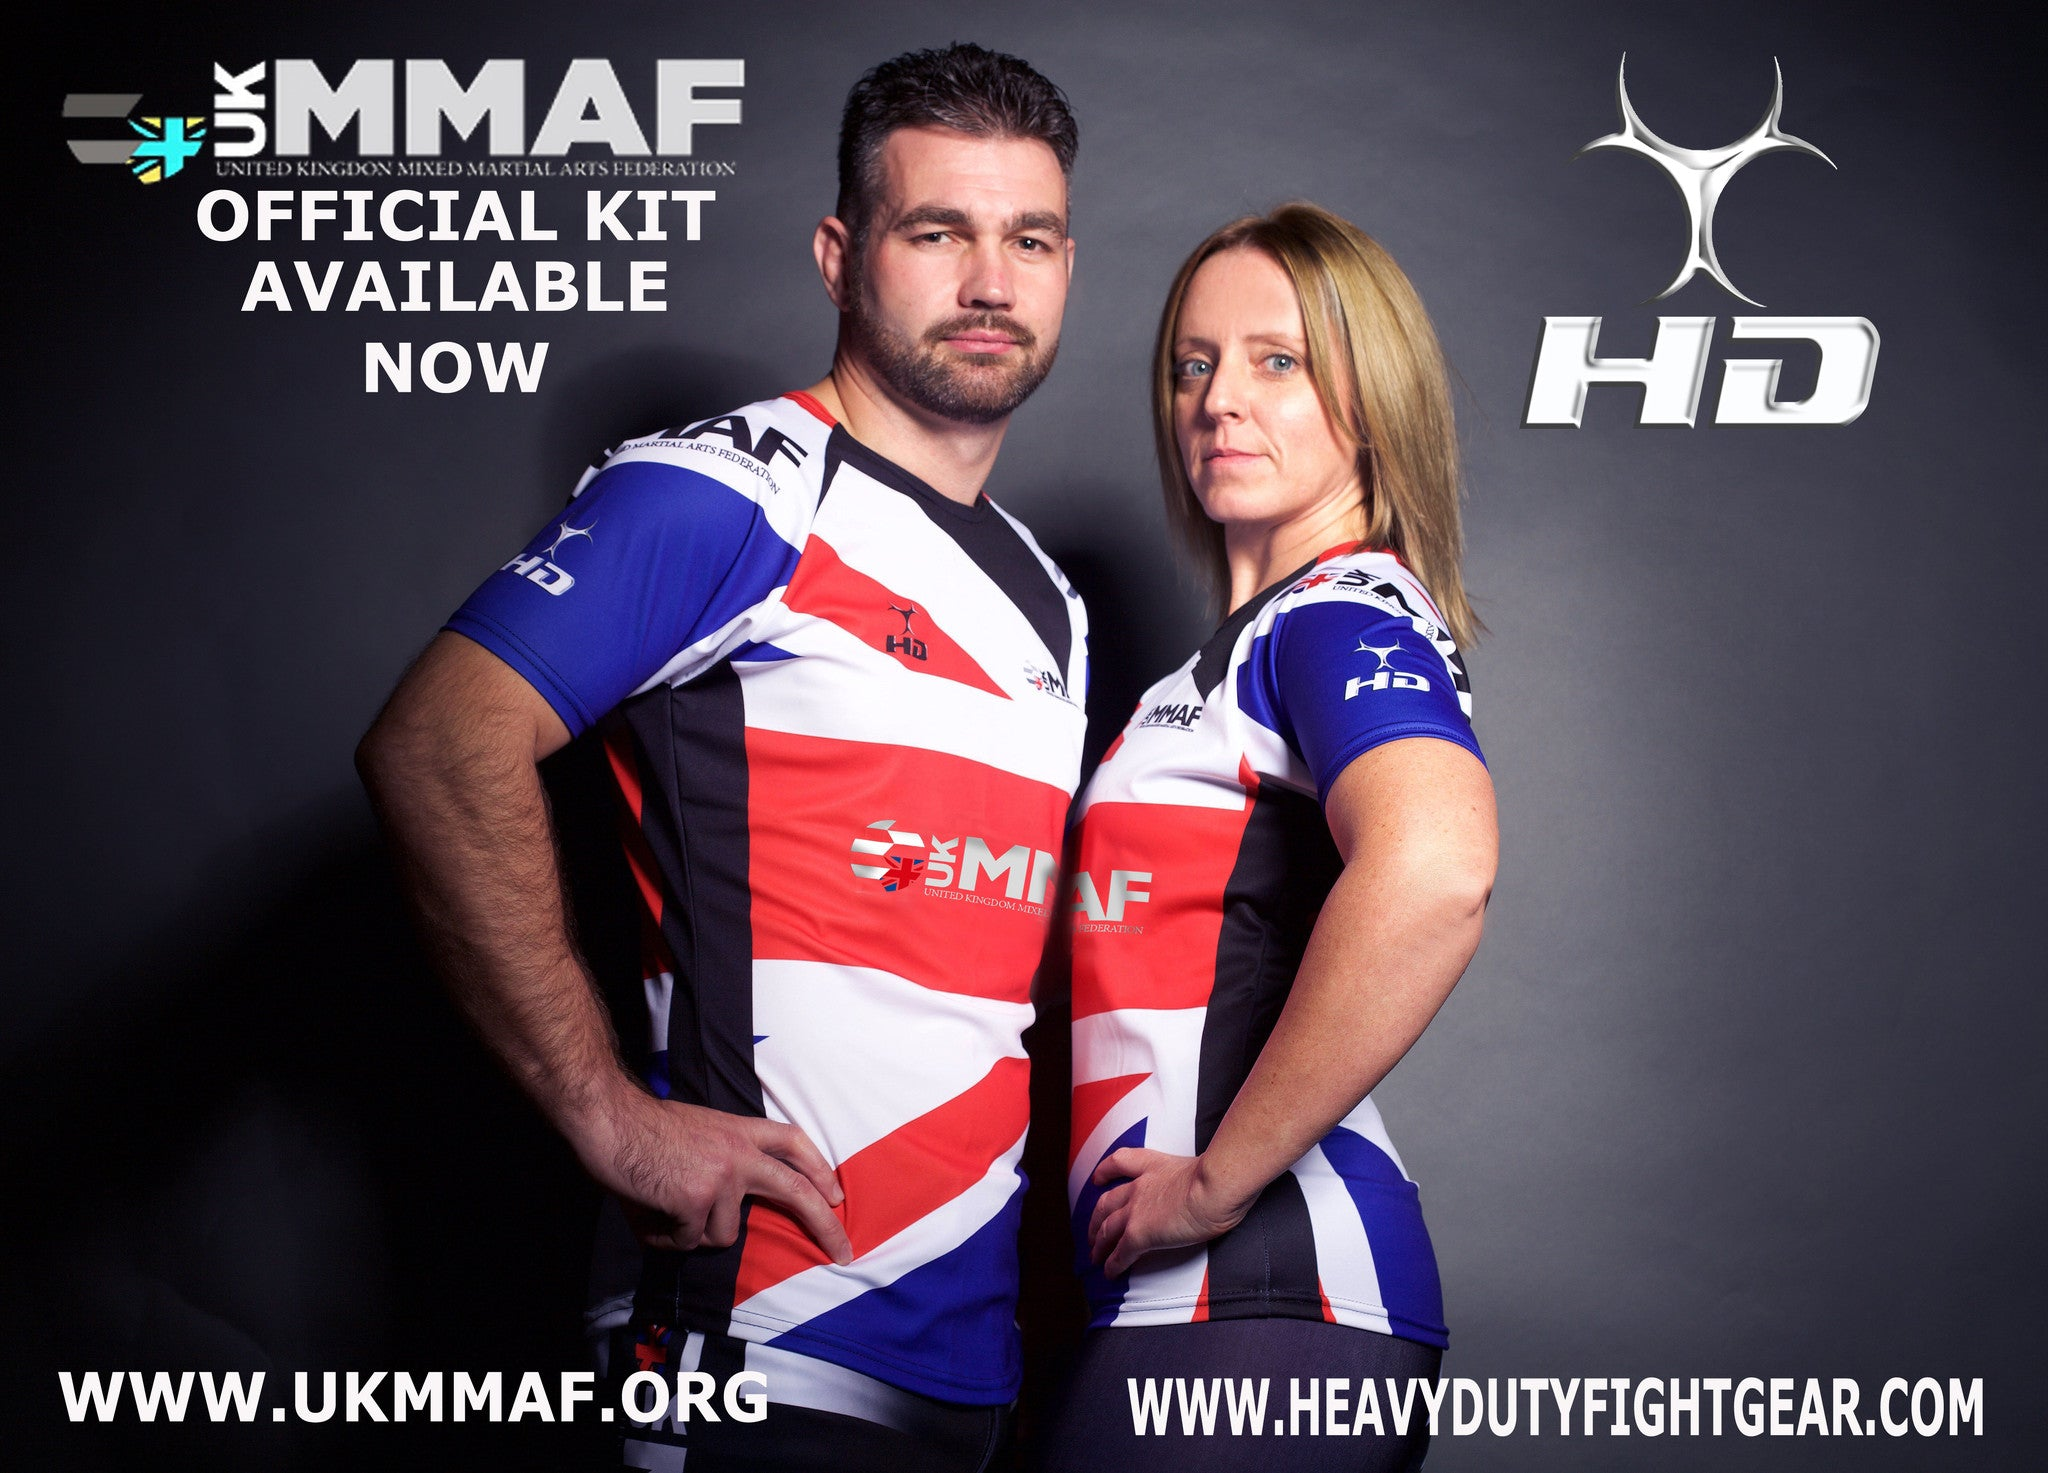 UKMMAF Official Kit - On Sale Now